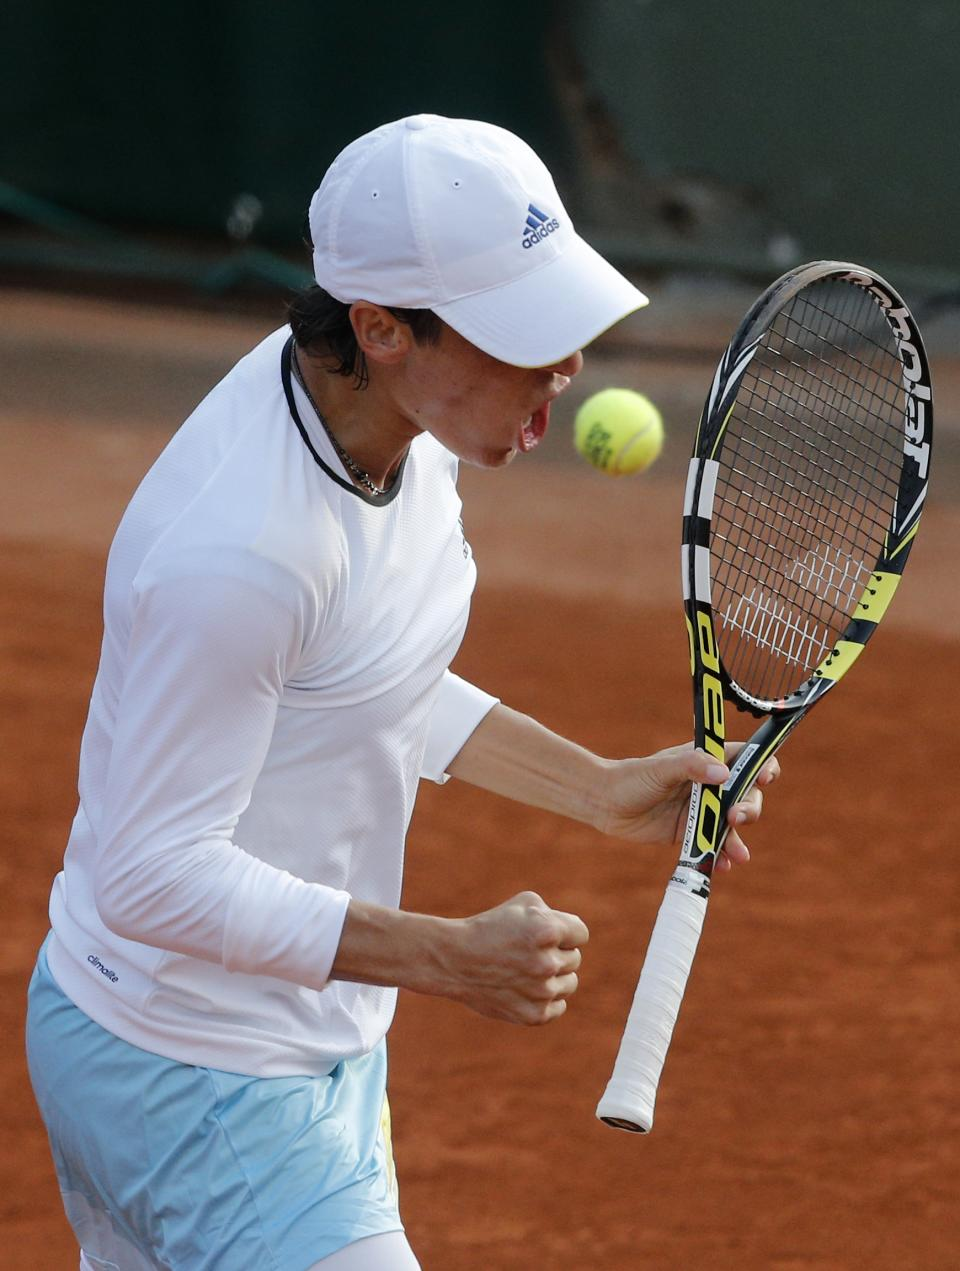 Italy's Francesca Schiavone reacts as she defeats Hungary's Melinda Czink during their first round match of the French Open tennis tournament at the Roland Garros stadium Monday, May 27, 2013 in Paris. (AP Photo/Michel Spingler)